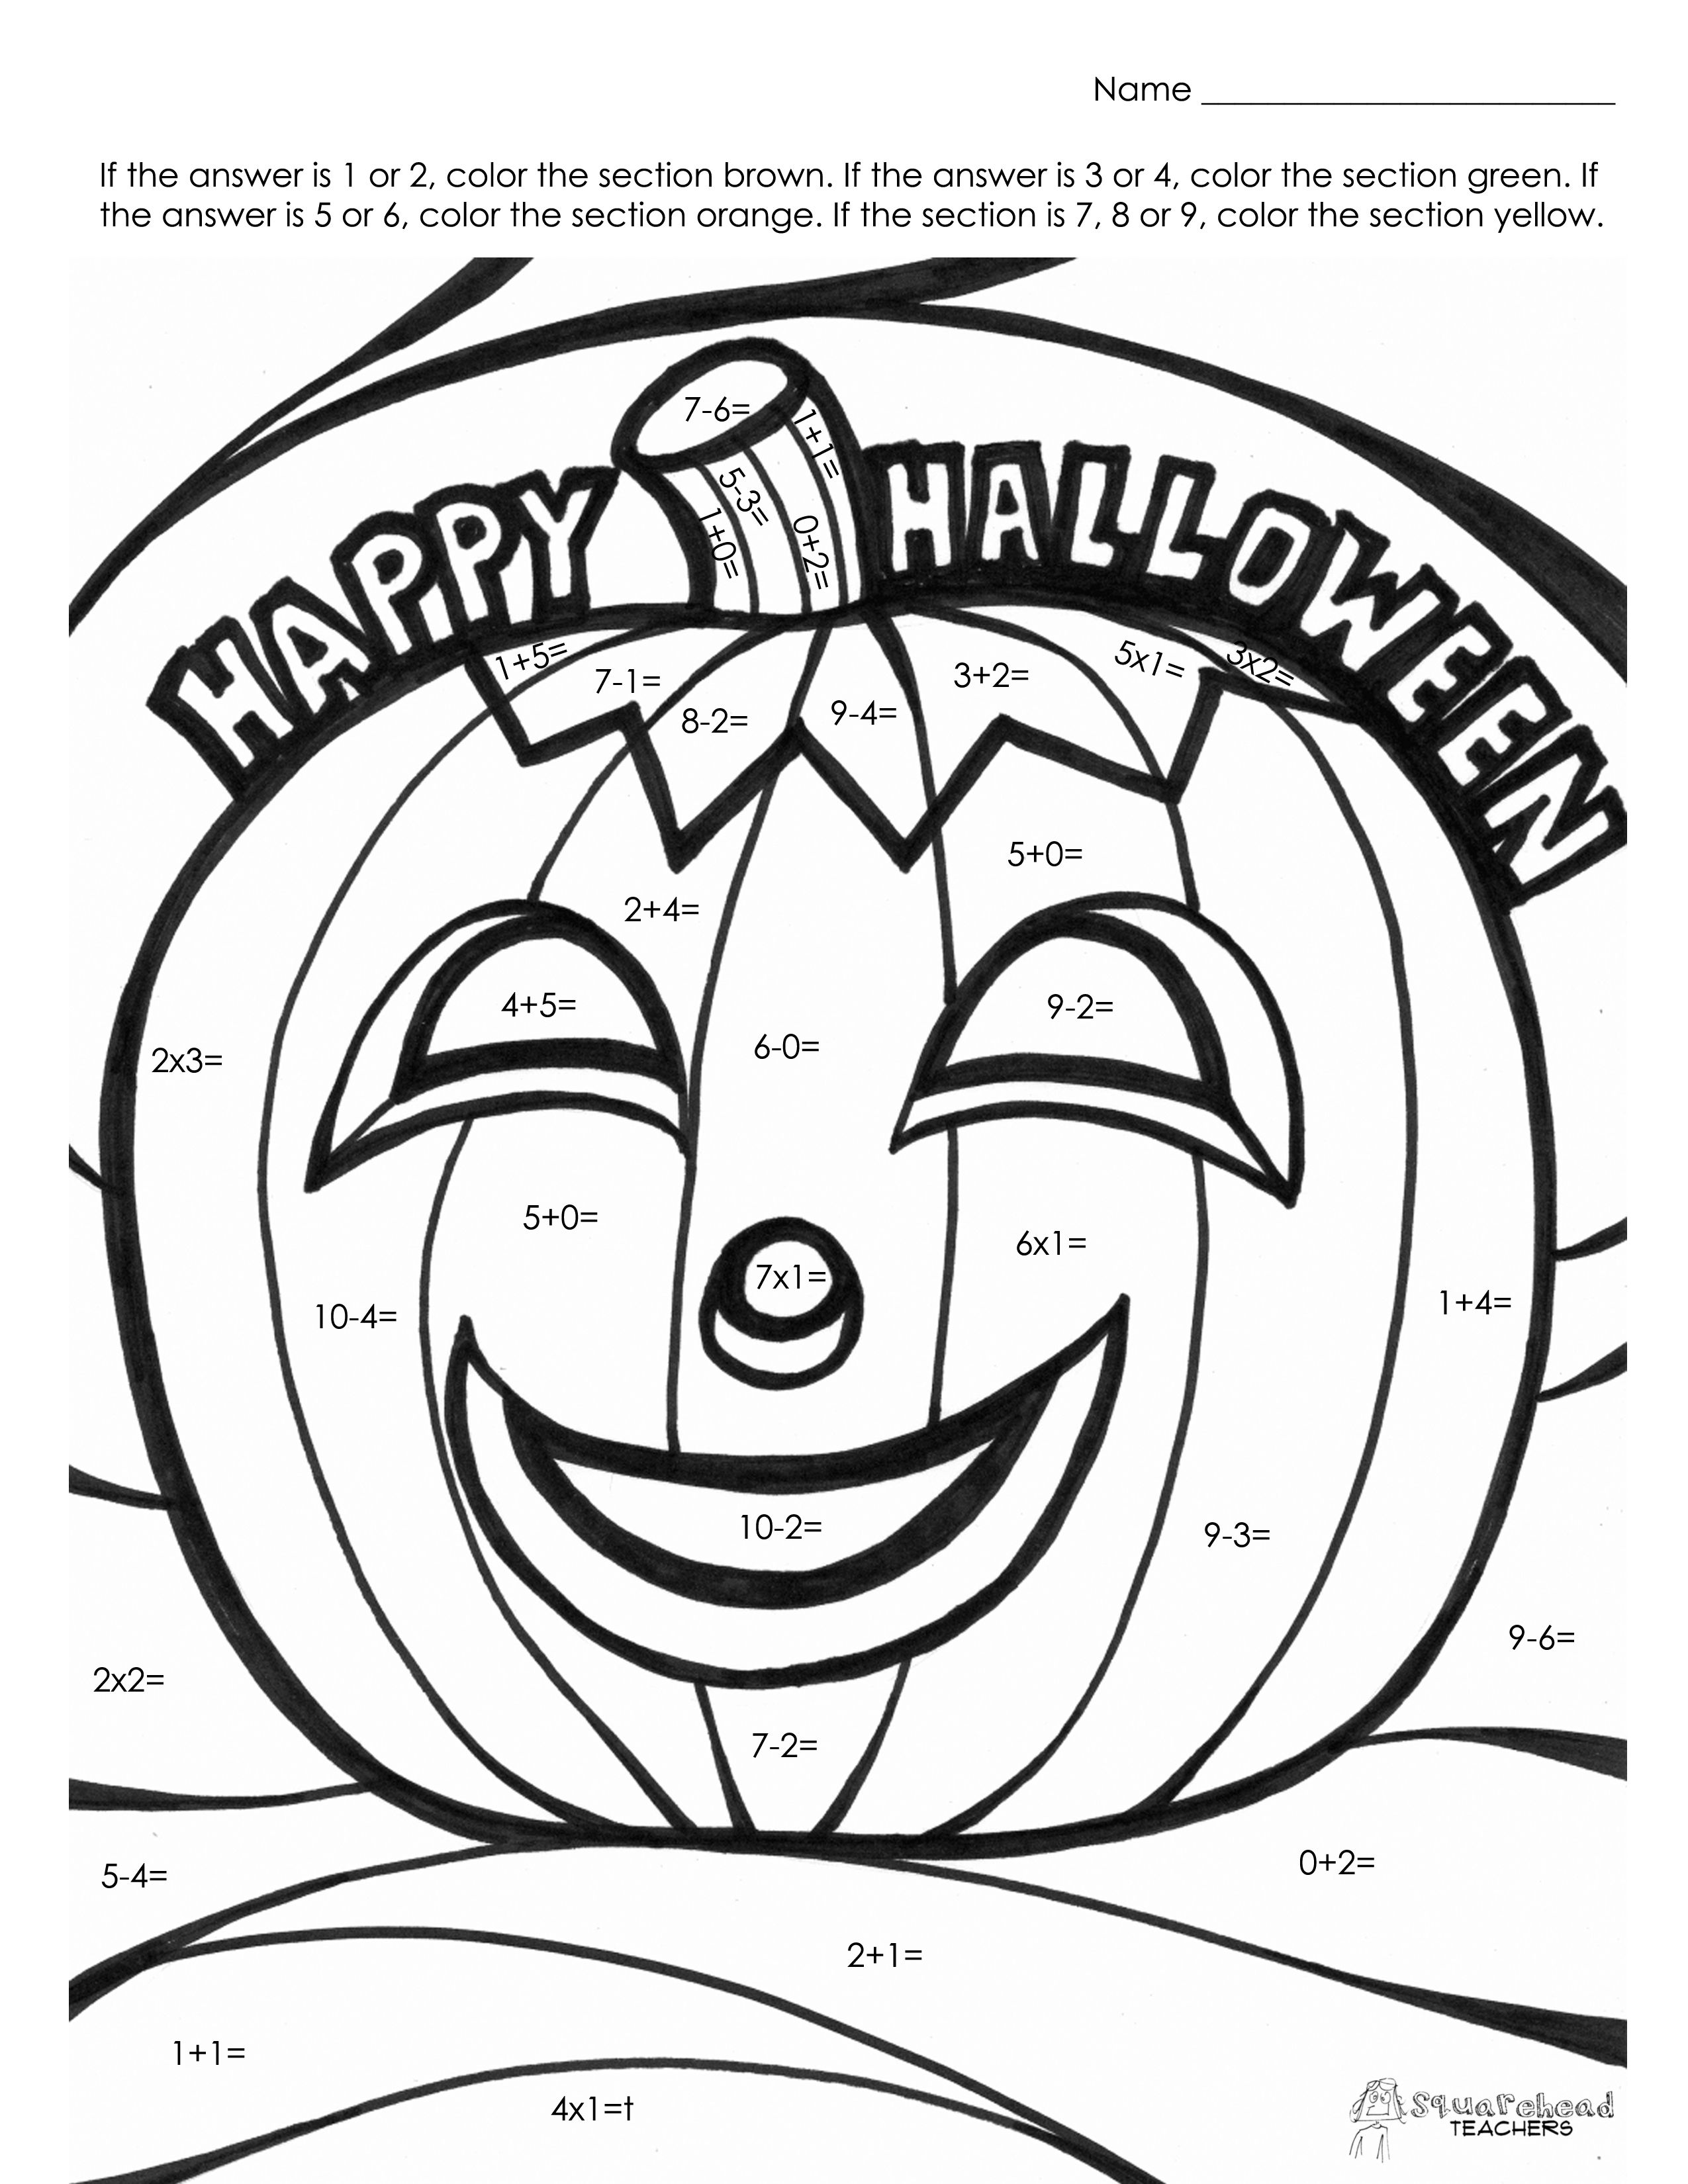 Coloring pages 5th grade - 5th Grade Halloween Coloring Pages Cols F5si